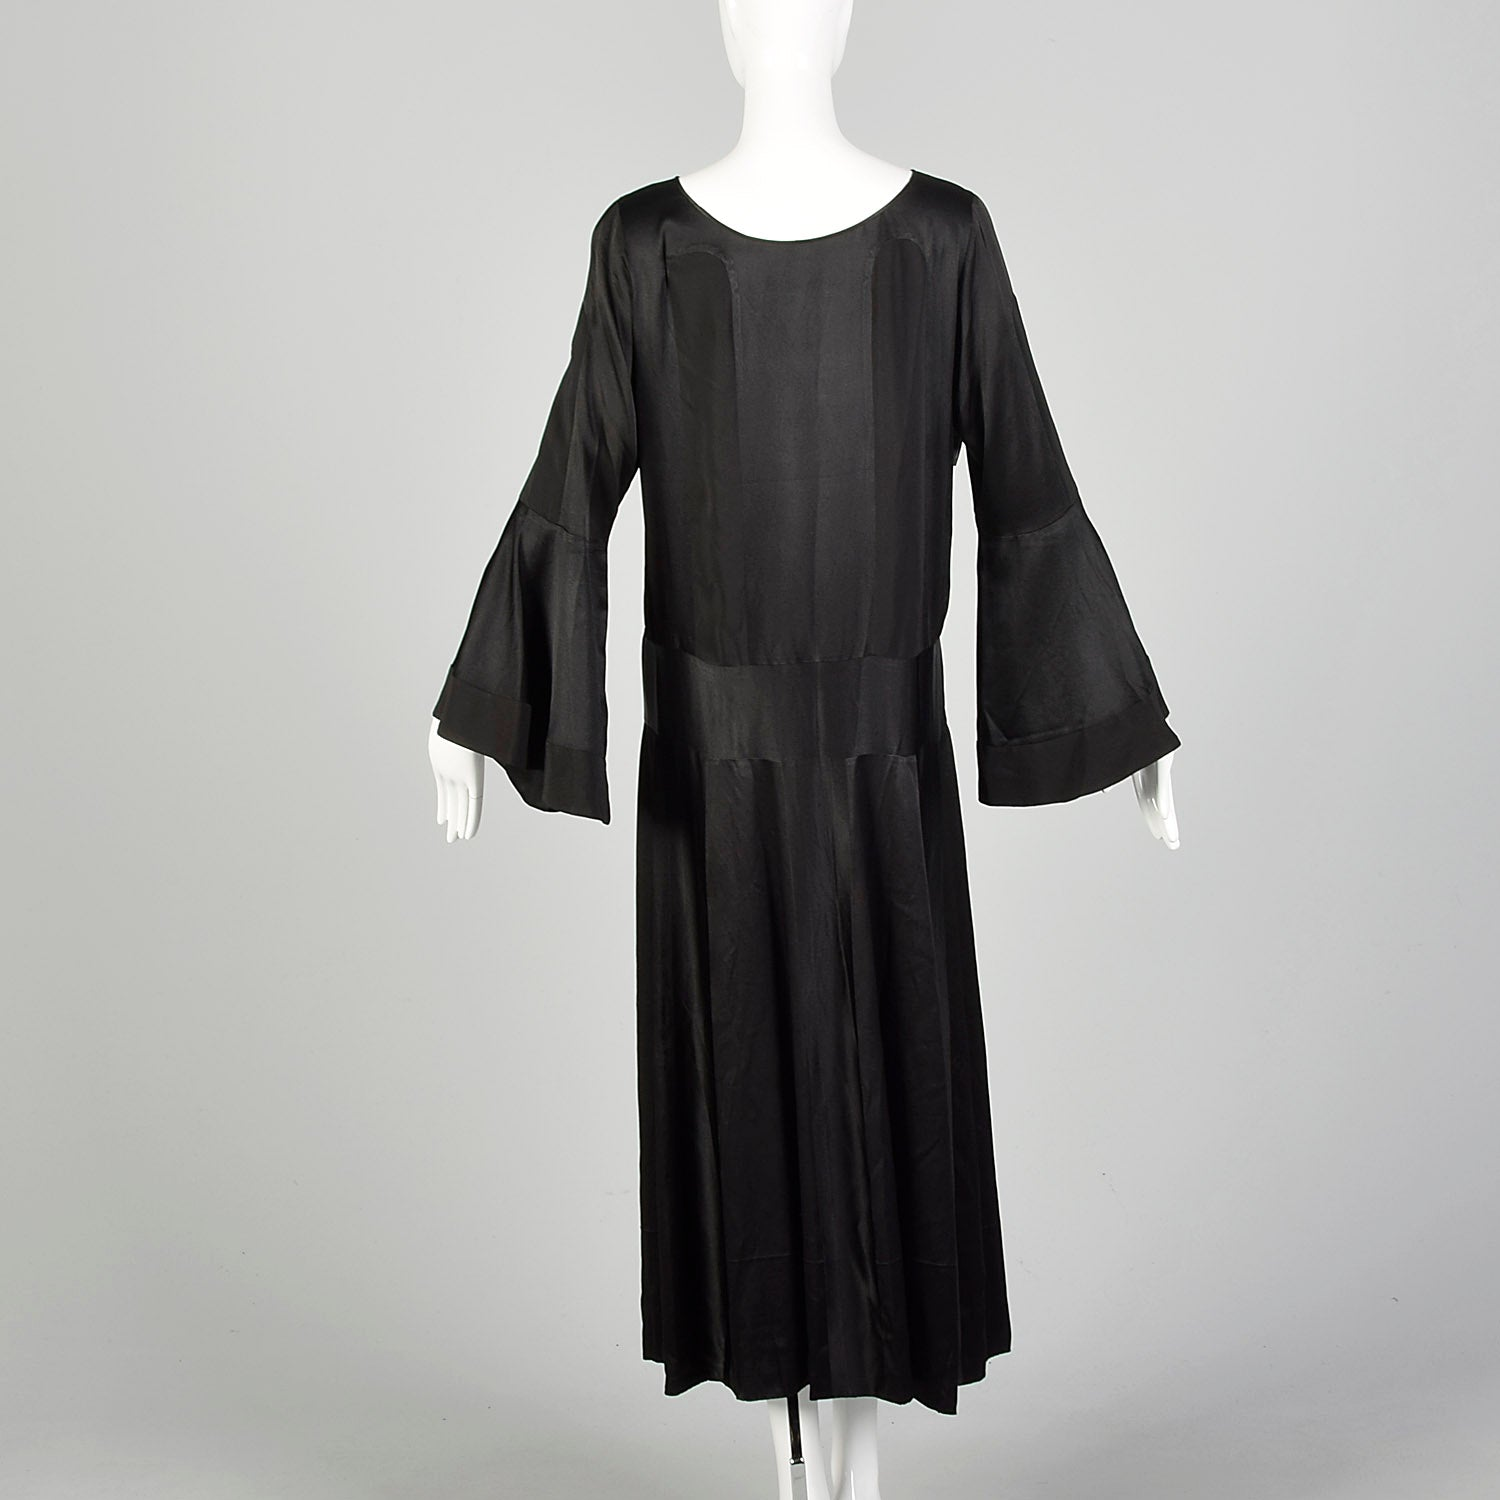 Large 1920s Silk Dress Black on Black Art Deco Trumpet Bell Sleeve Evening Gown